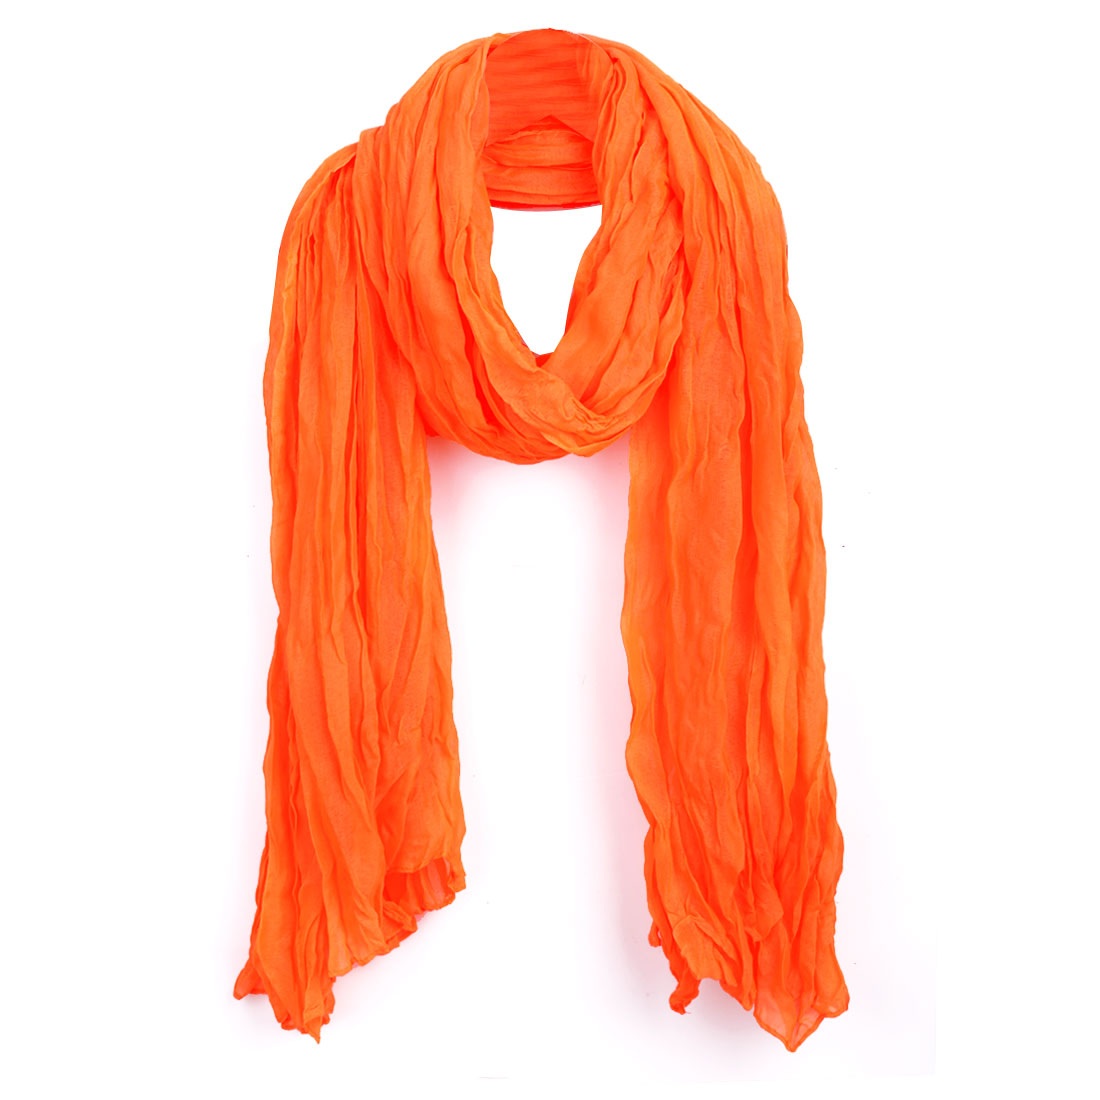 Women Warm Classic Leisure Autumn Wearing Scarf Orange